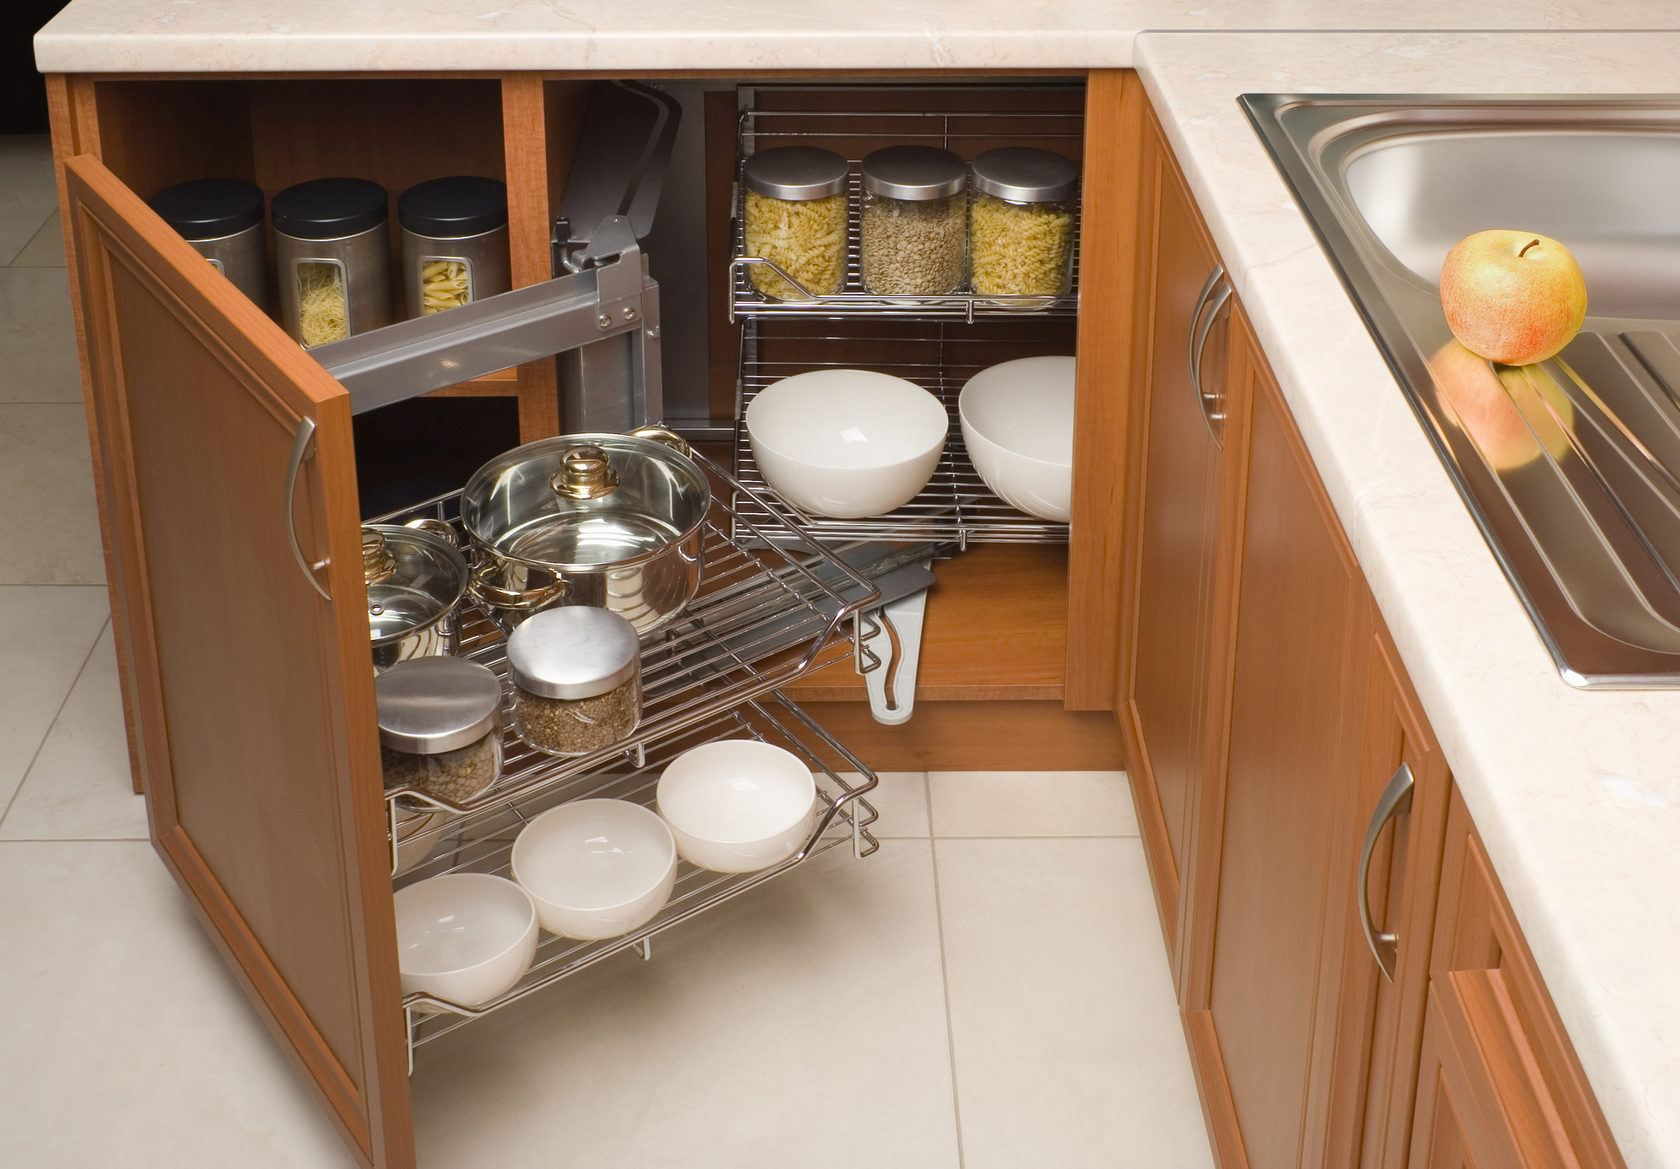 Organizing Kitchen Storage Systems and Pantry for Ultimate Comfort. A lot of space for glass cans